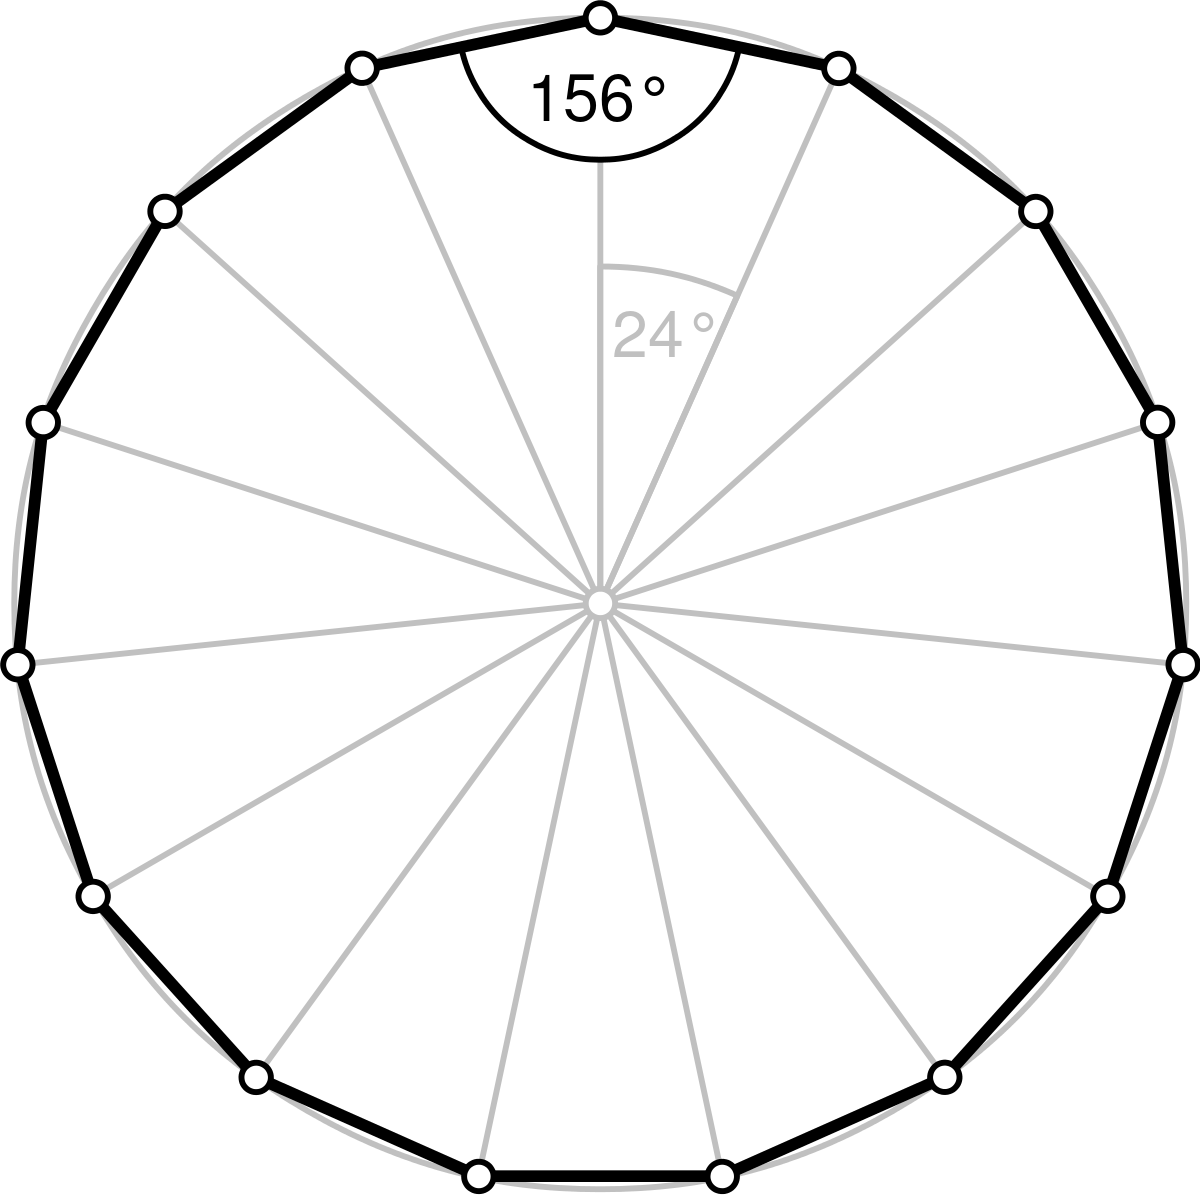 Polygon drawing. Pentadecagon wikipedia